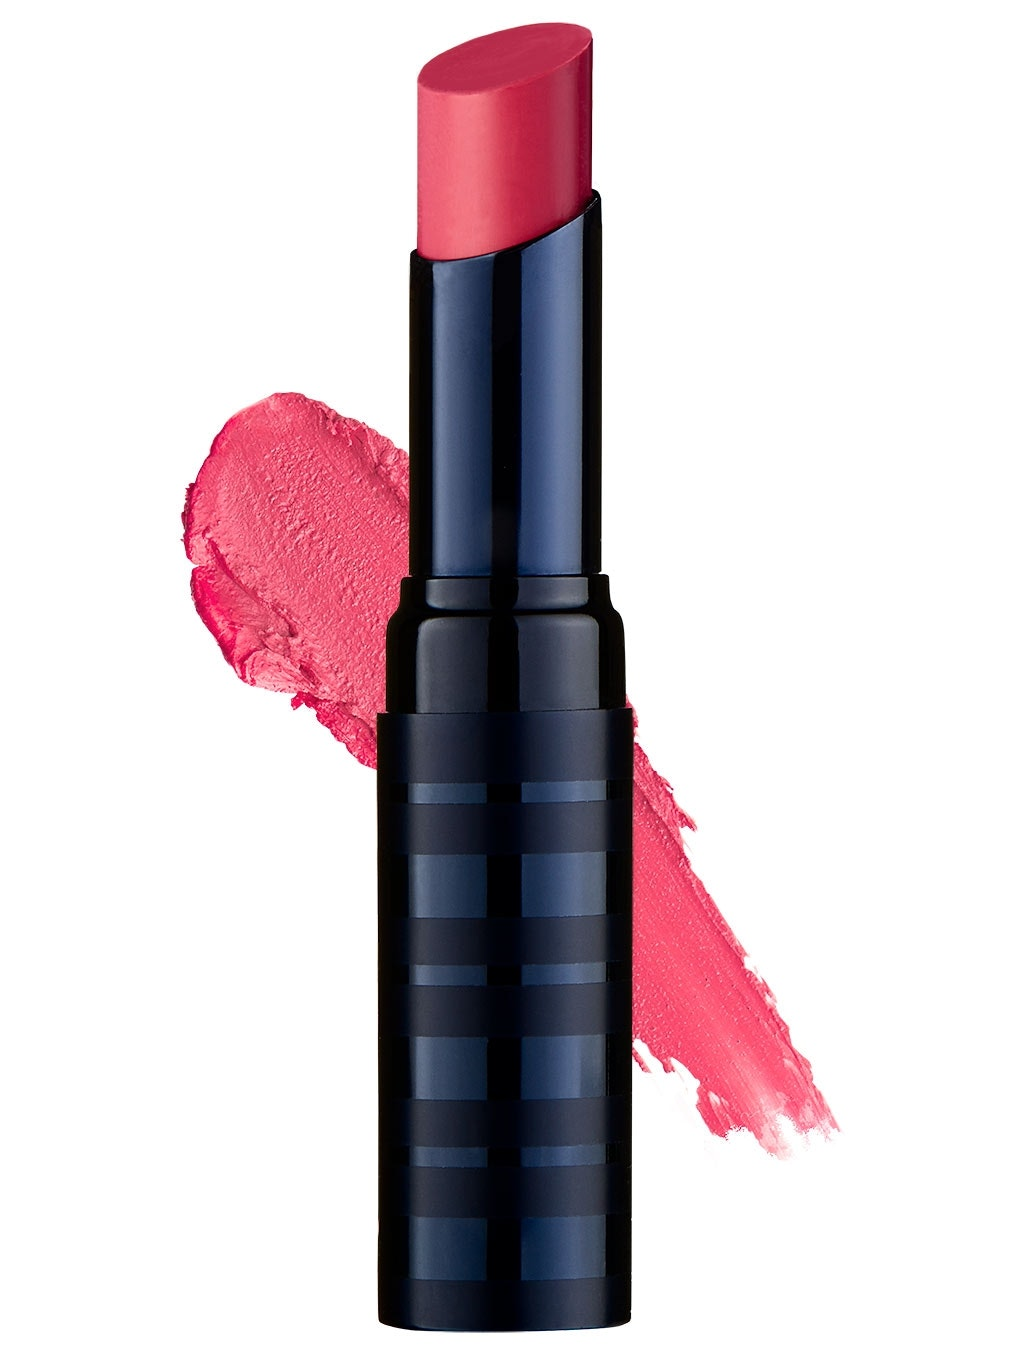 Color Intense Lipstick in Garden Party